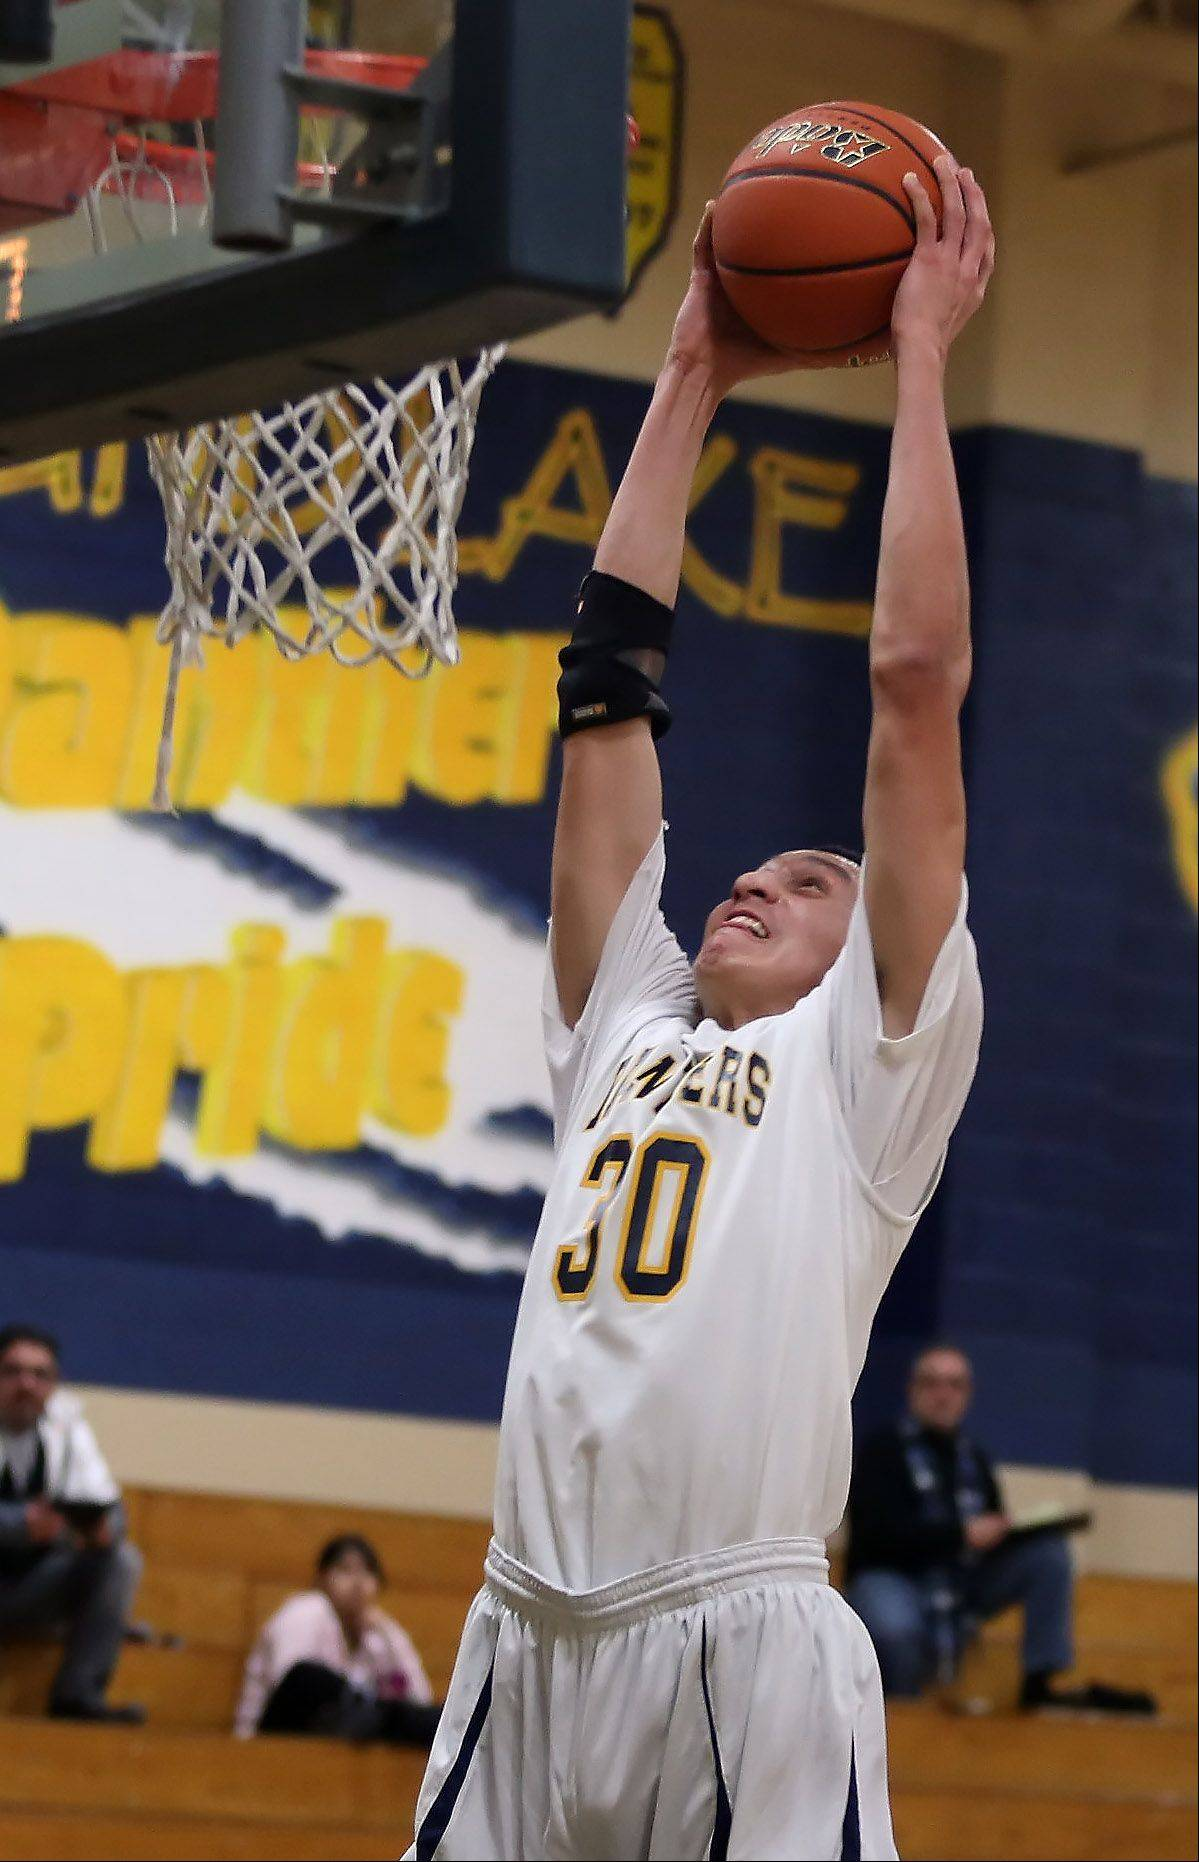 Round Lake's Mateusz Lopez dunks the ball during Thursday's game against Northtown Academy in Round Lake.